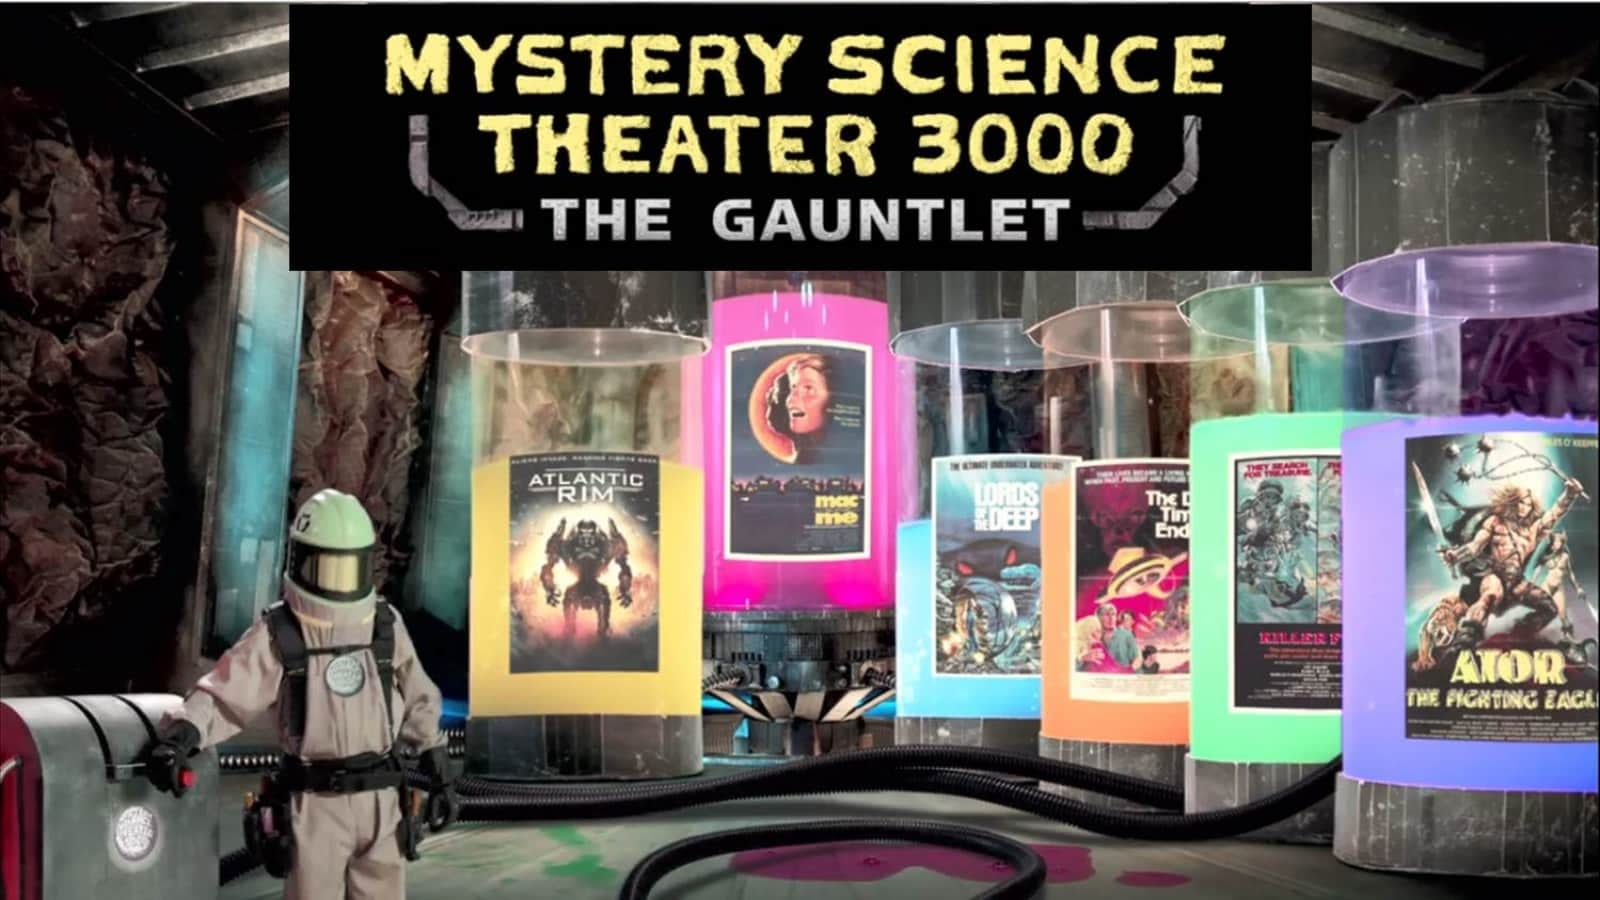 "Mystery Science Theater 3000 'The Gauntlet"": A Cheesy Marathon of Mayhem (REVIEW)"